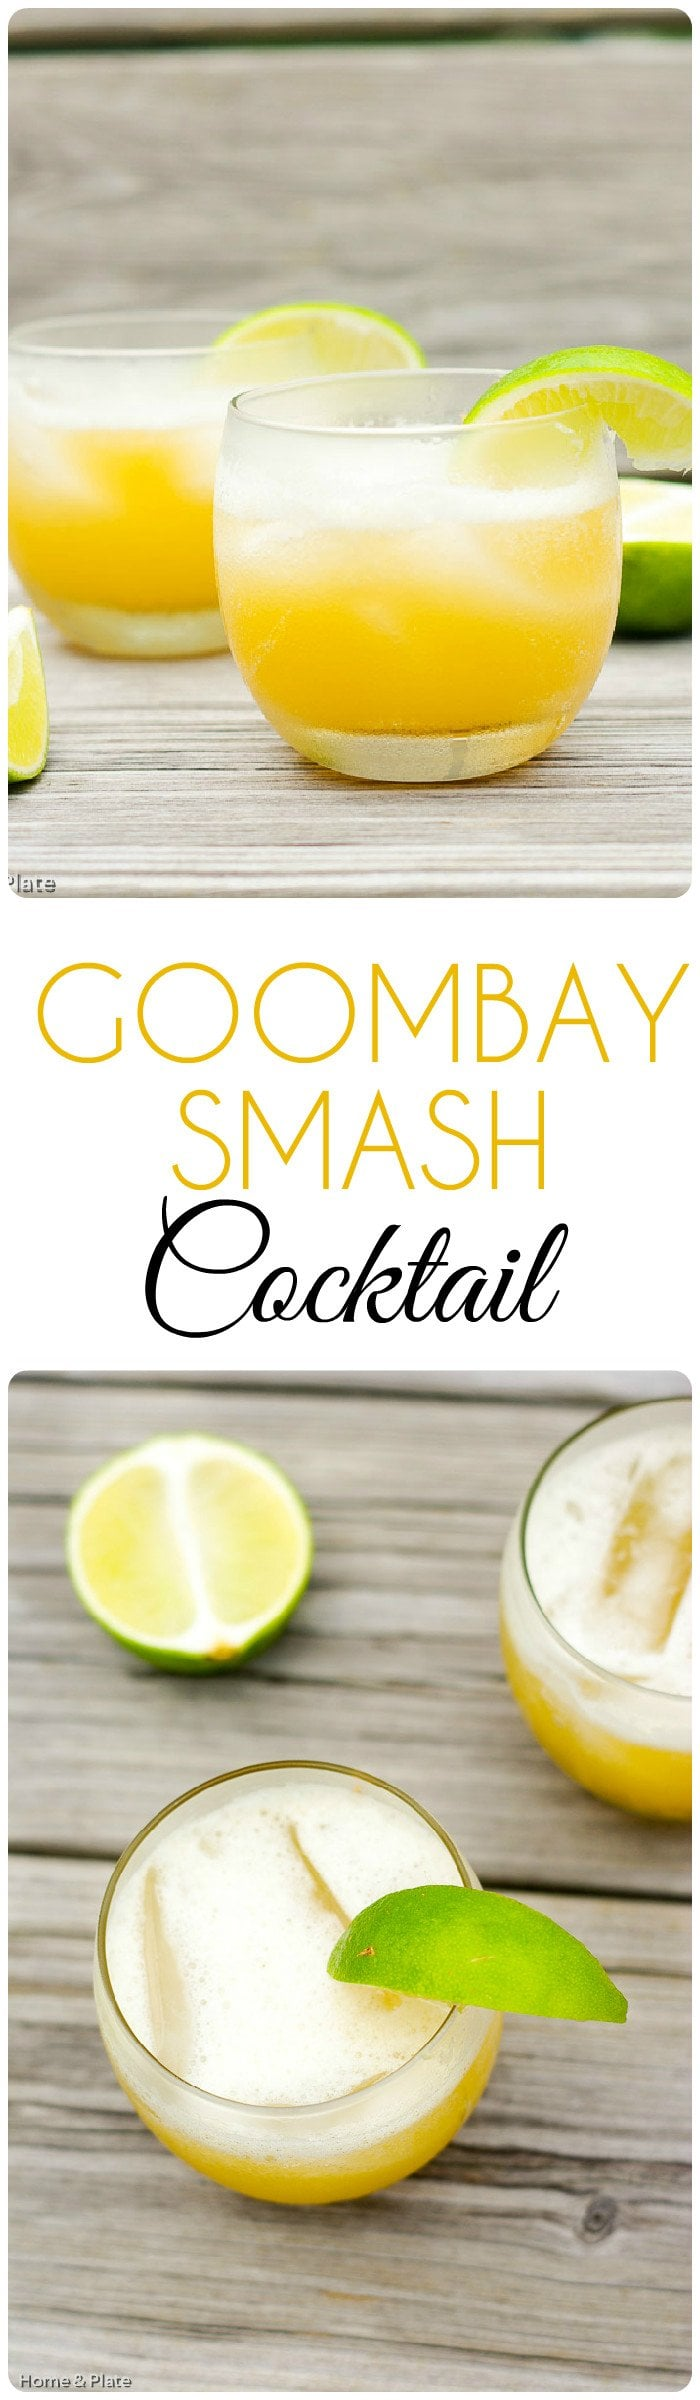 Goombay Smash Cocktail | Home & Plate | www.homeandplate.com | The taste of coconut and pineapple makes this a beach favorite cocktail of mine.